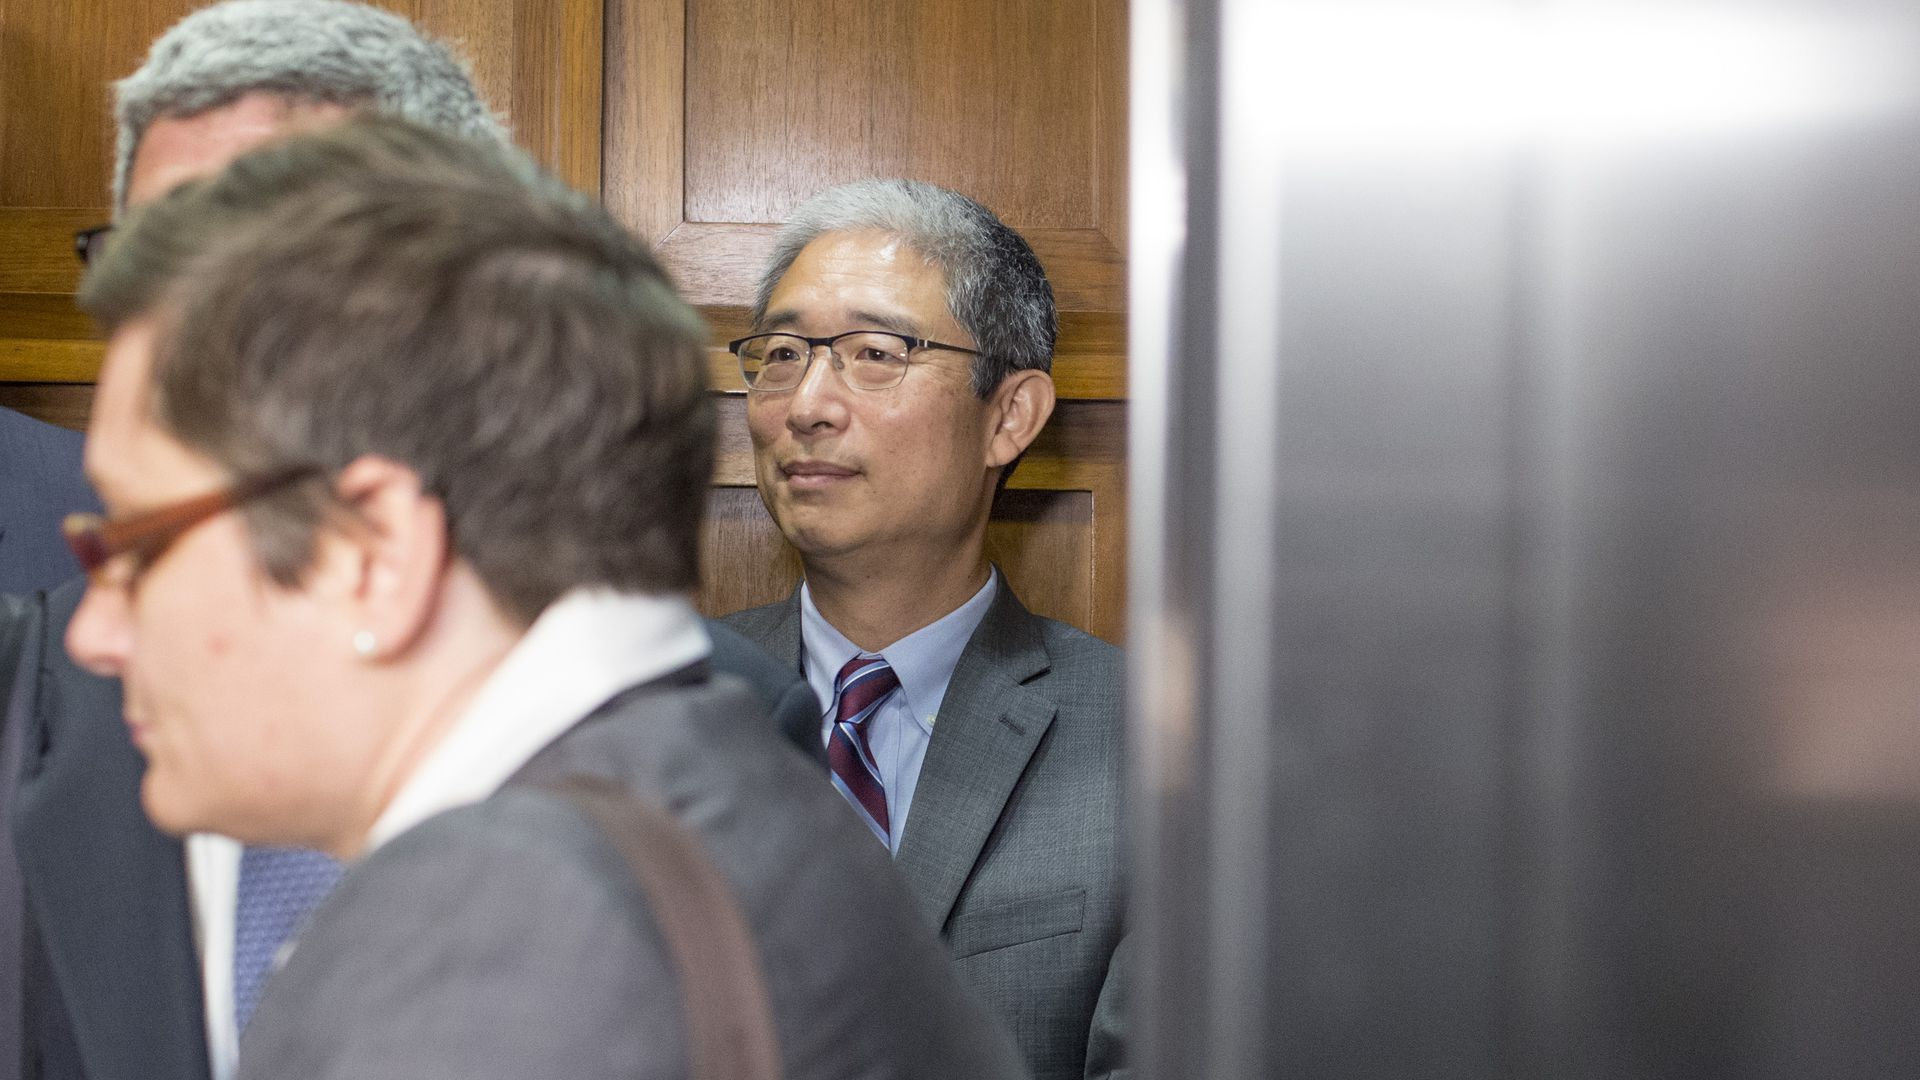 Bruce Ohr standing behind other men.